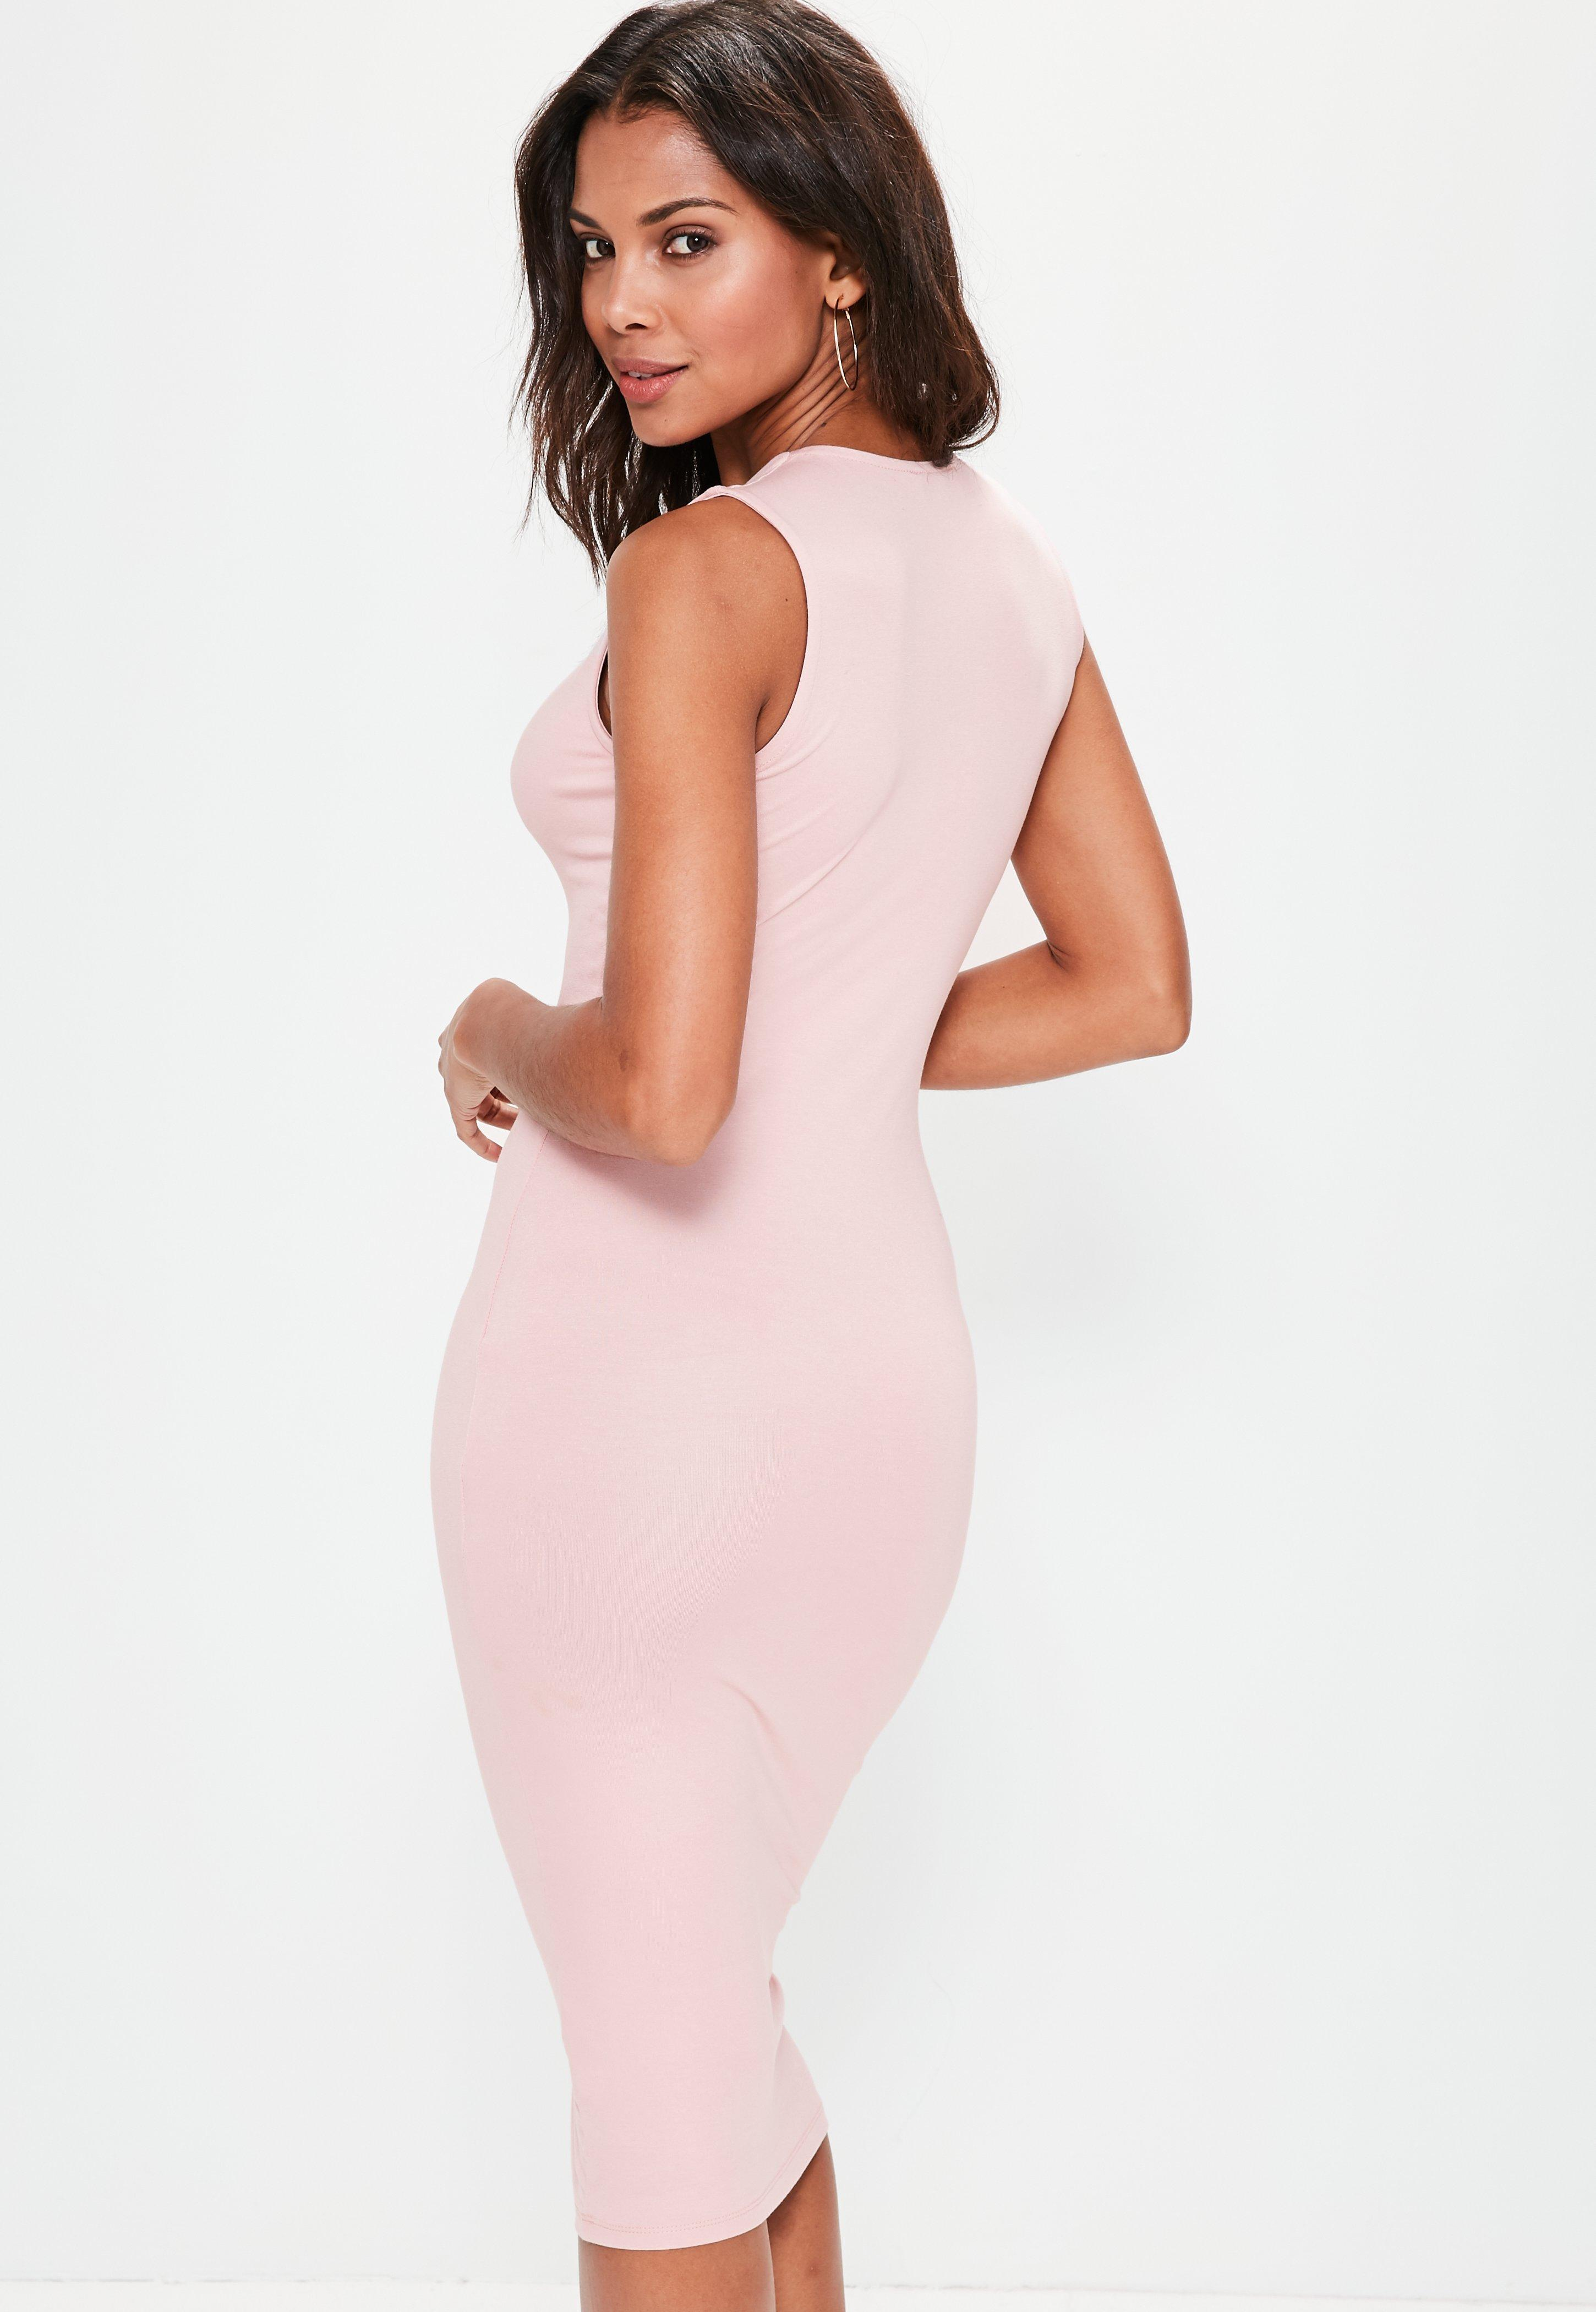 Lyst - Missguided Pink Extreme Plunge Midi Band Dress in Pink 7c38a9d18